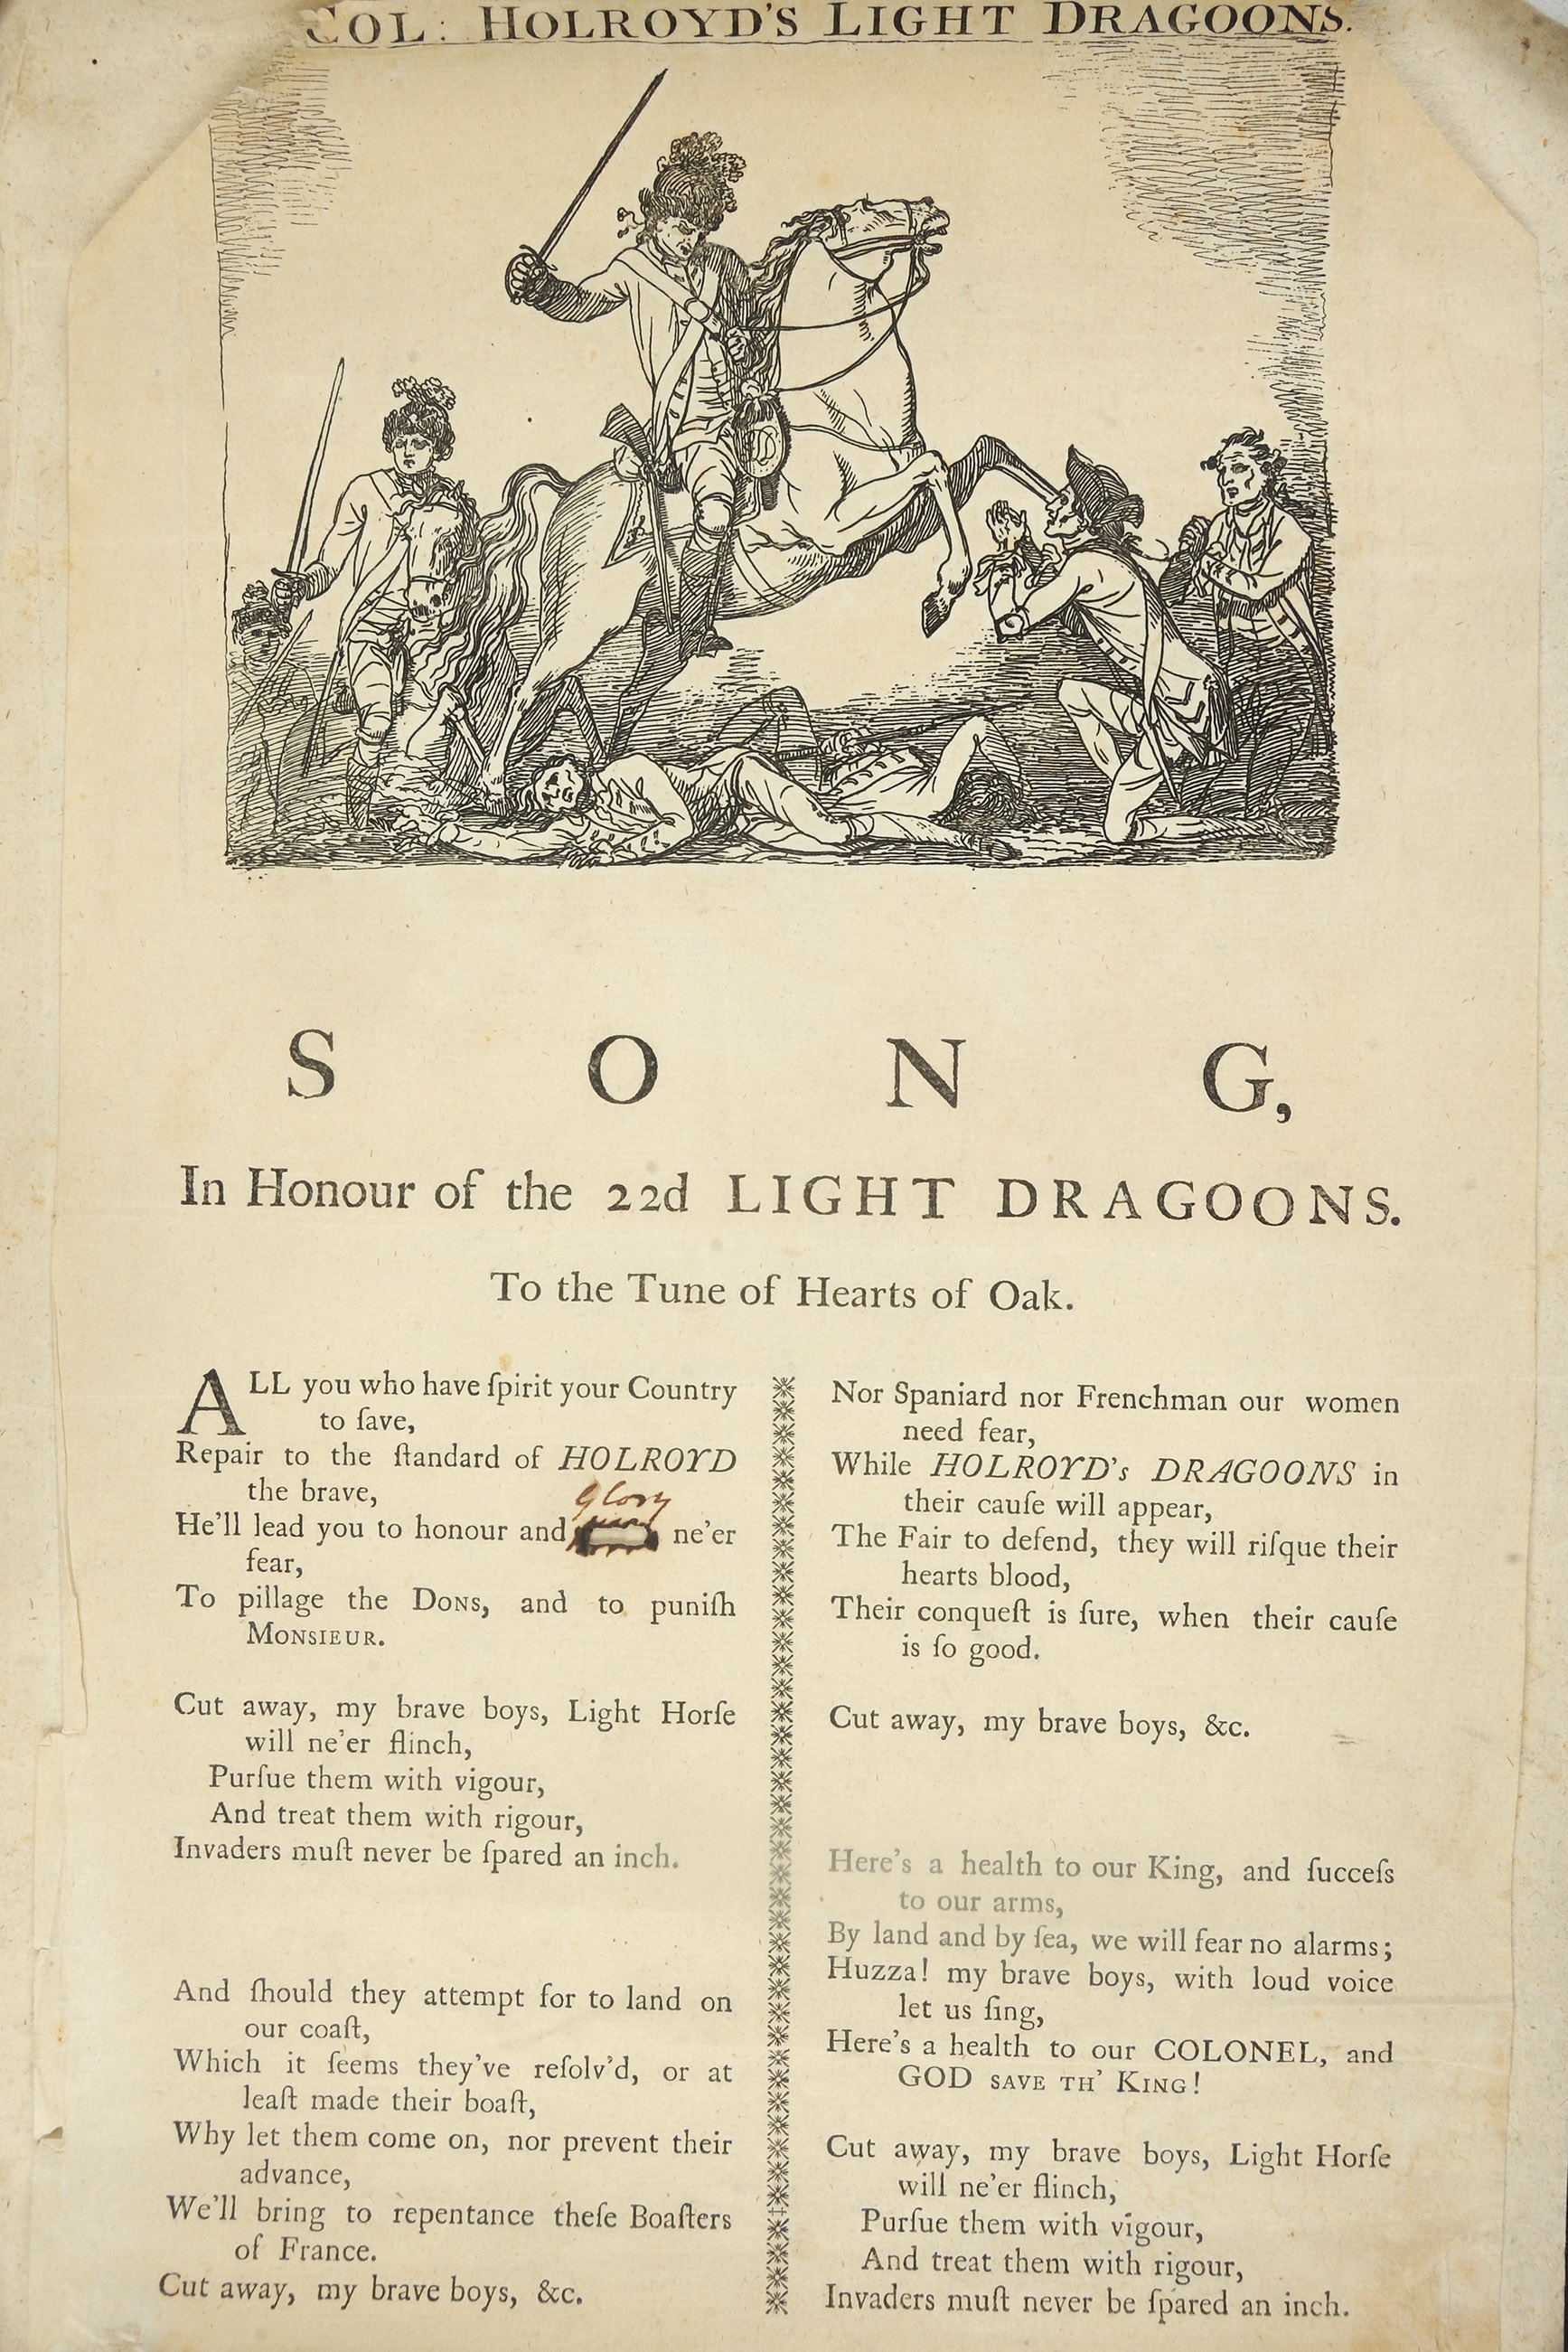 Lt. Col. Holroyd's Light Dragoons. Song, in Honour of the 22d Light Dragoons. To the Tune of Hearts of Oak. [ca. 1780]